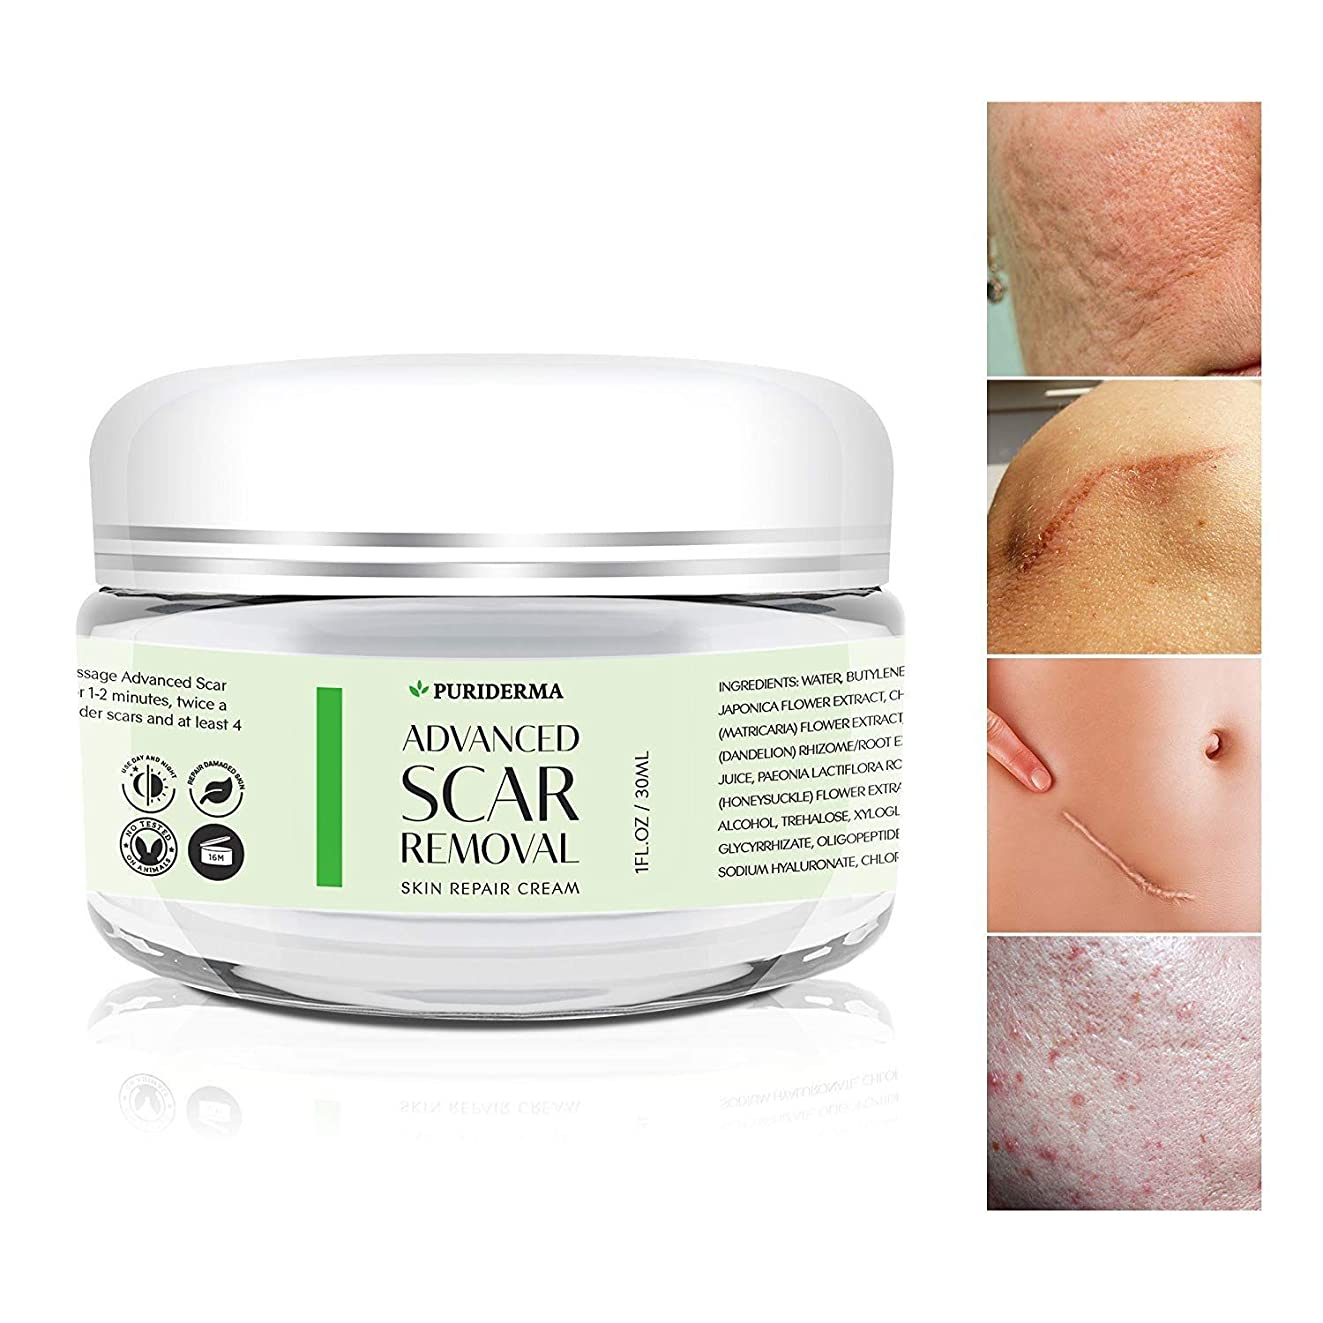 公然と確かな吐くPuriderma 社 の Advanced Scar Removal Cream (30 ml) 妊娠線 や 傷跡 修復に Advanced Treatment for Face & Body, Old & New Scars from Cuts, Stretch Marks, C-Sections & Surgeries - With Natural Herbal Extracts Formula -